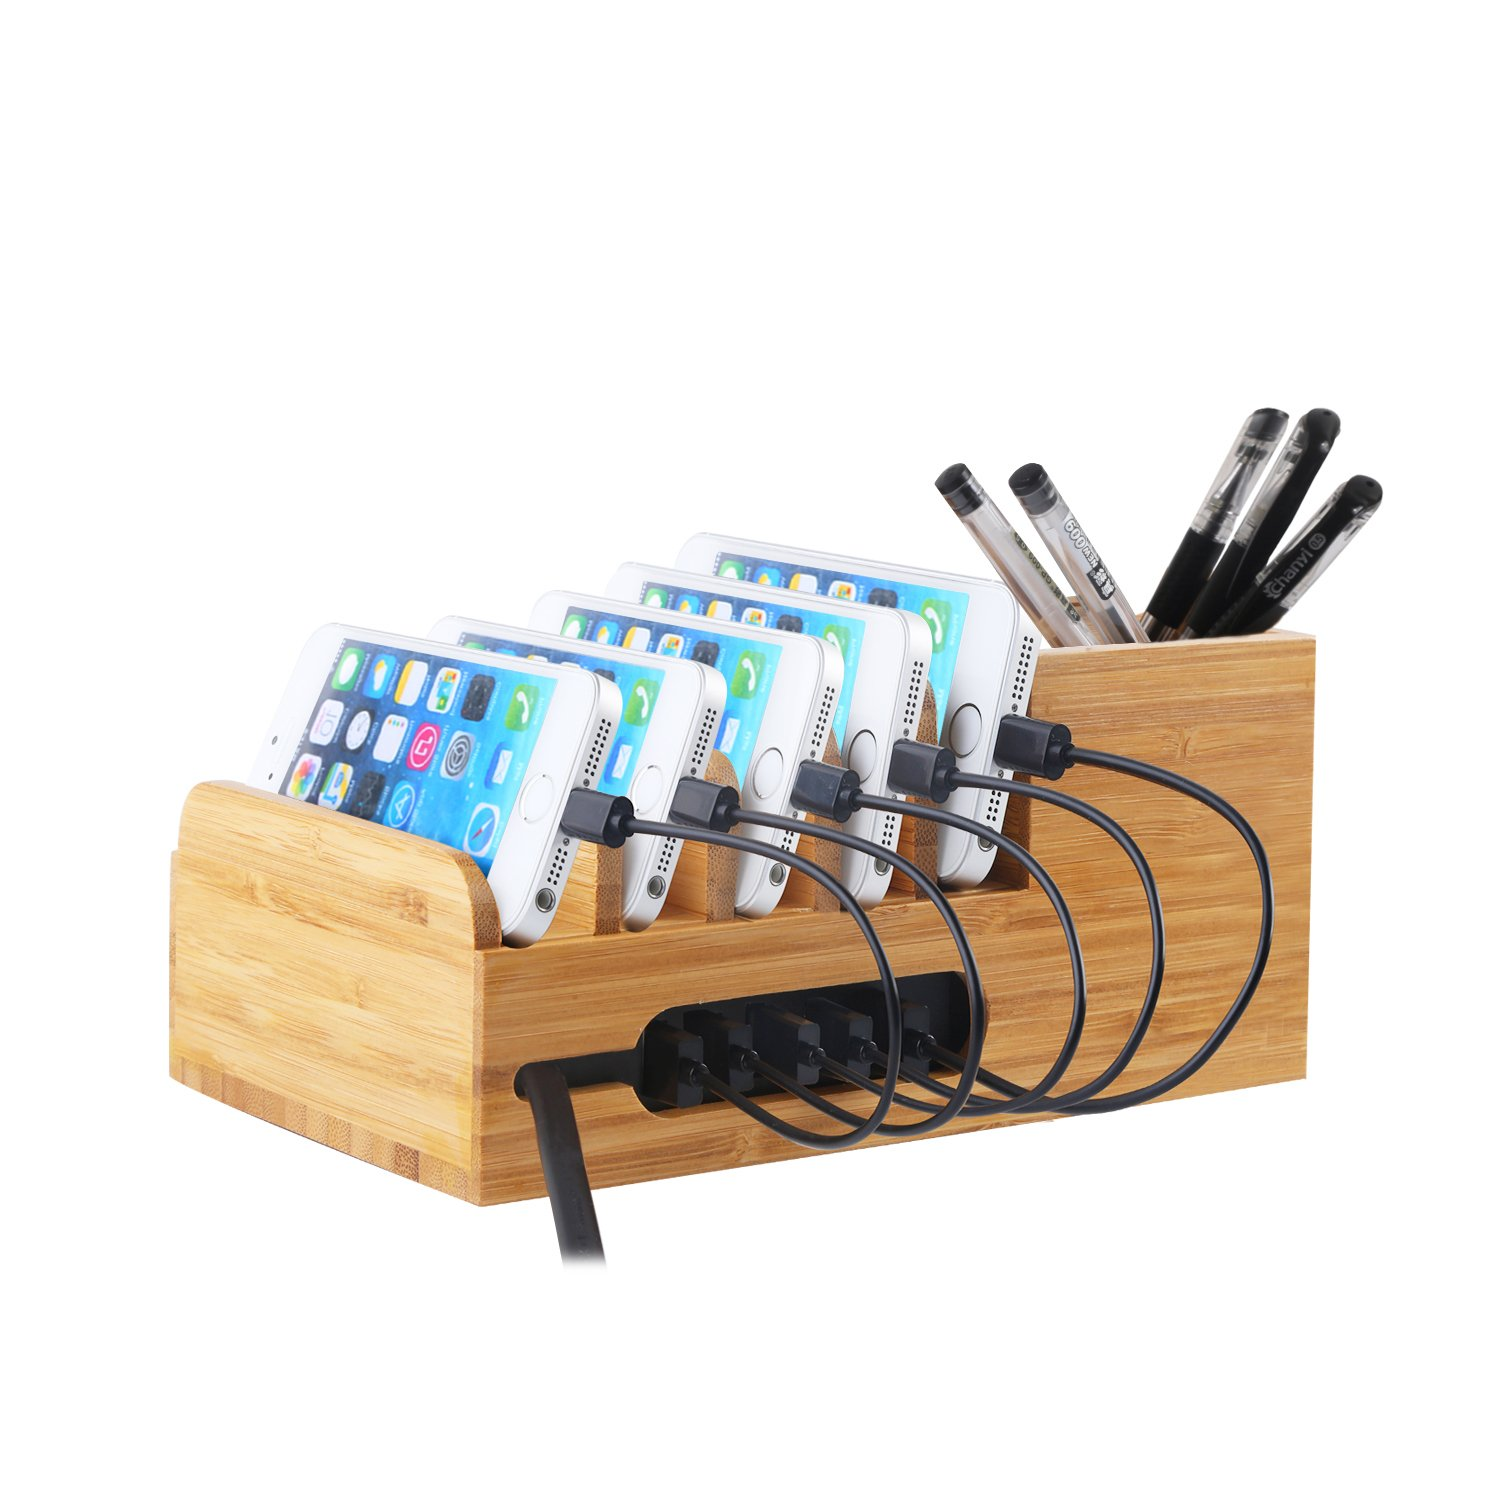 Amazoncom Lottogo Charging Station with 6 port 40W